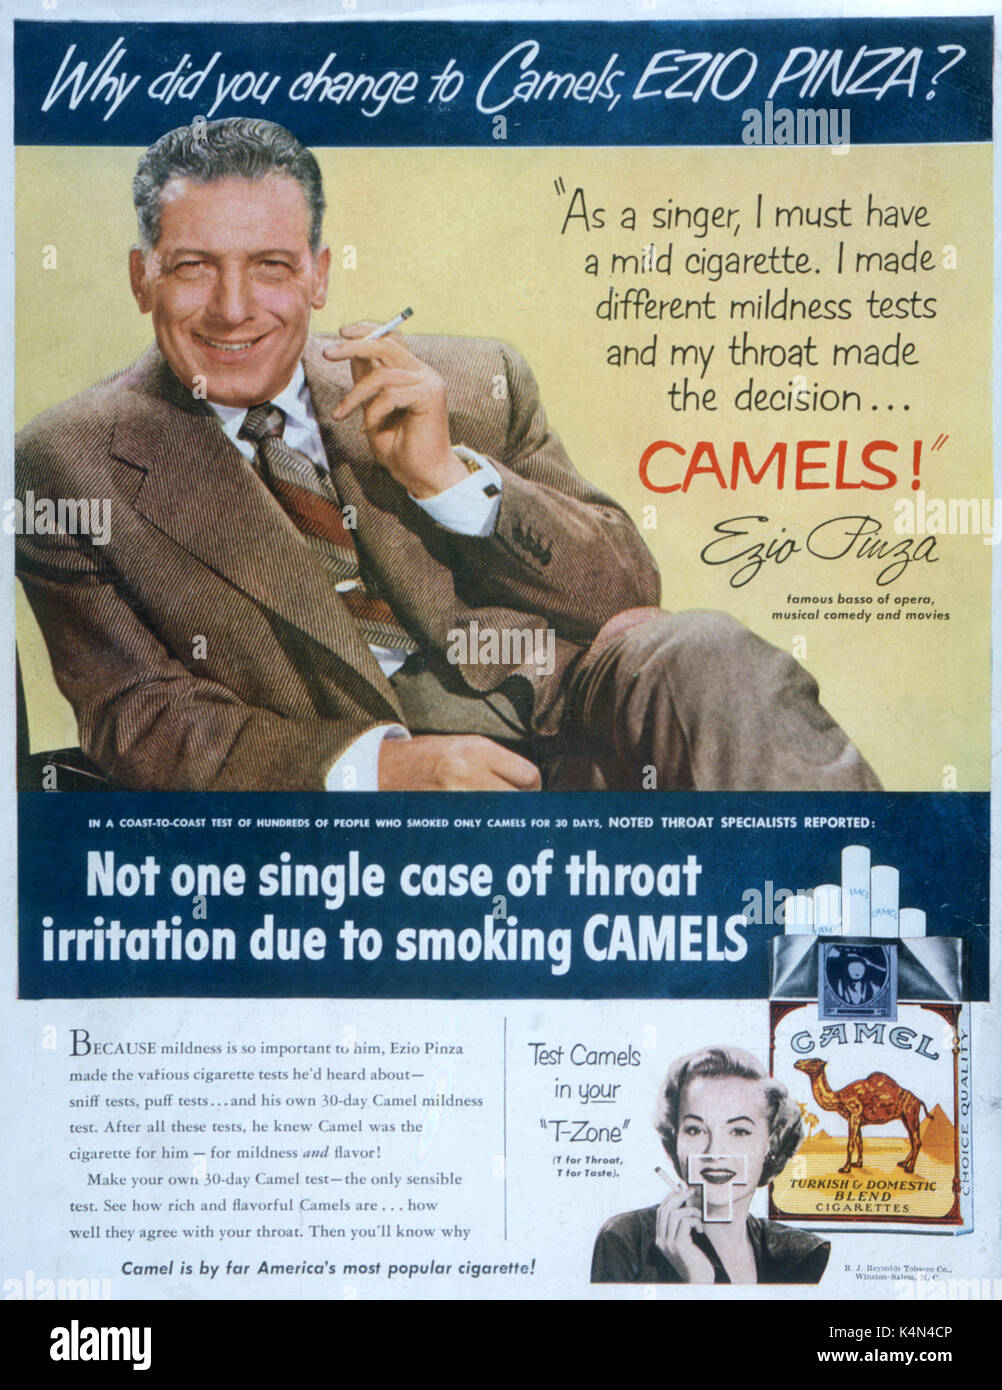 Camel Cigarettes Advert High Resolution Stock Photography And Images Alamy